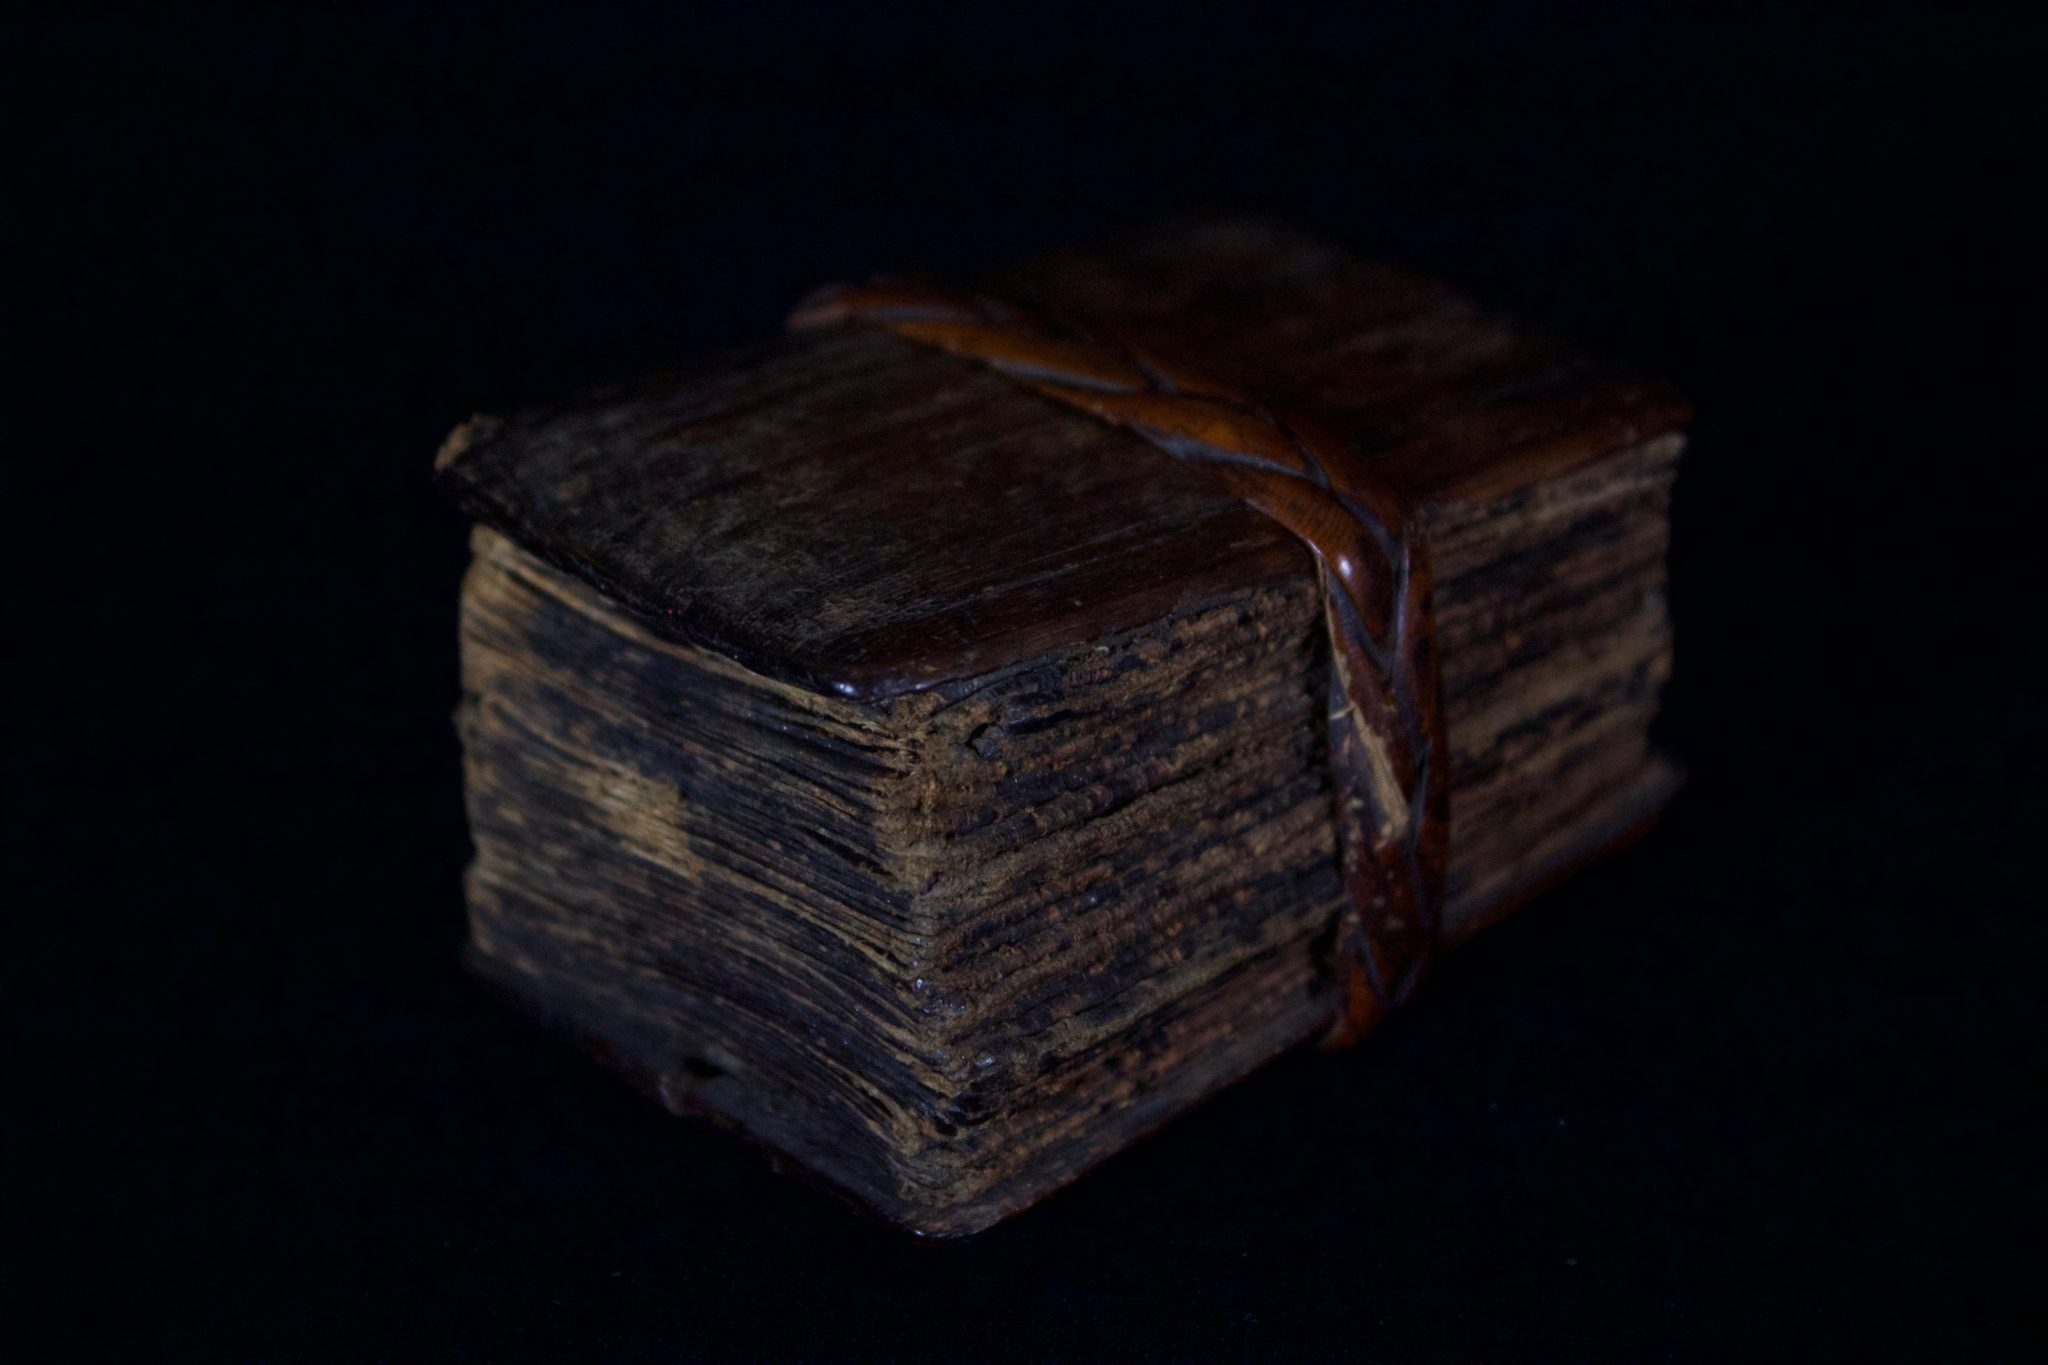 """'Pustaha' or Shaman Medicine/Magic Book, Indonesia, Sumatra, Batak tribe, Wood cover, bark pages and braided rattan band. Late 19th or early 20th c, The book unfolds like an accordion. It contains the shaman's magic formulas (tabas), oracles, recipes for medicines and instructions for performing rituals and for producing magic cures. It contains three main divisions of knowledge: the art of preserving life; the art of destroying life and the art of fortune telling. 1 ¾"""" x 2 ¼"""" x 3"""", $1200."""